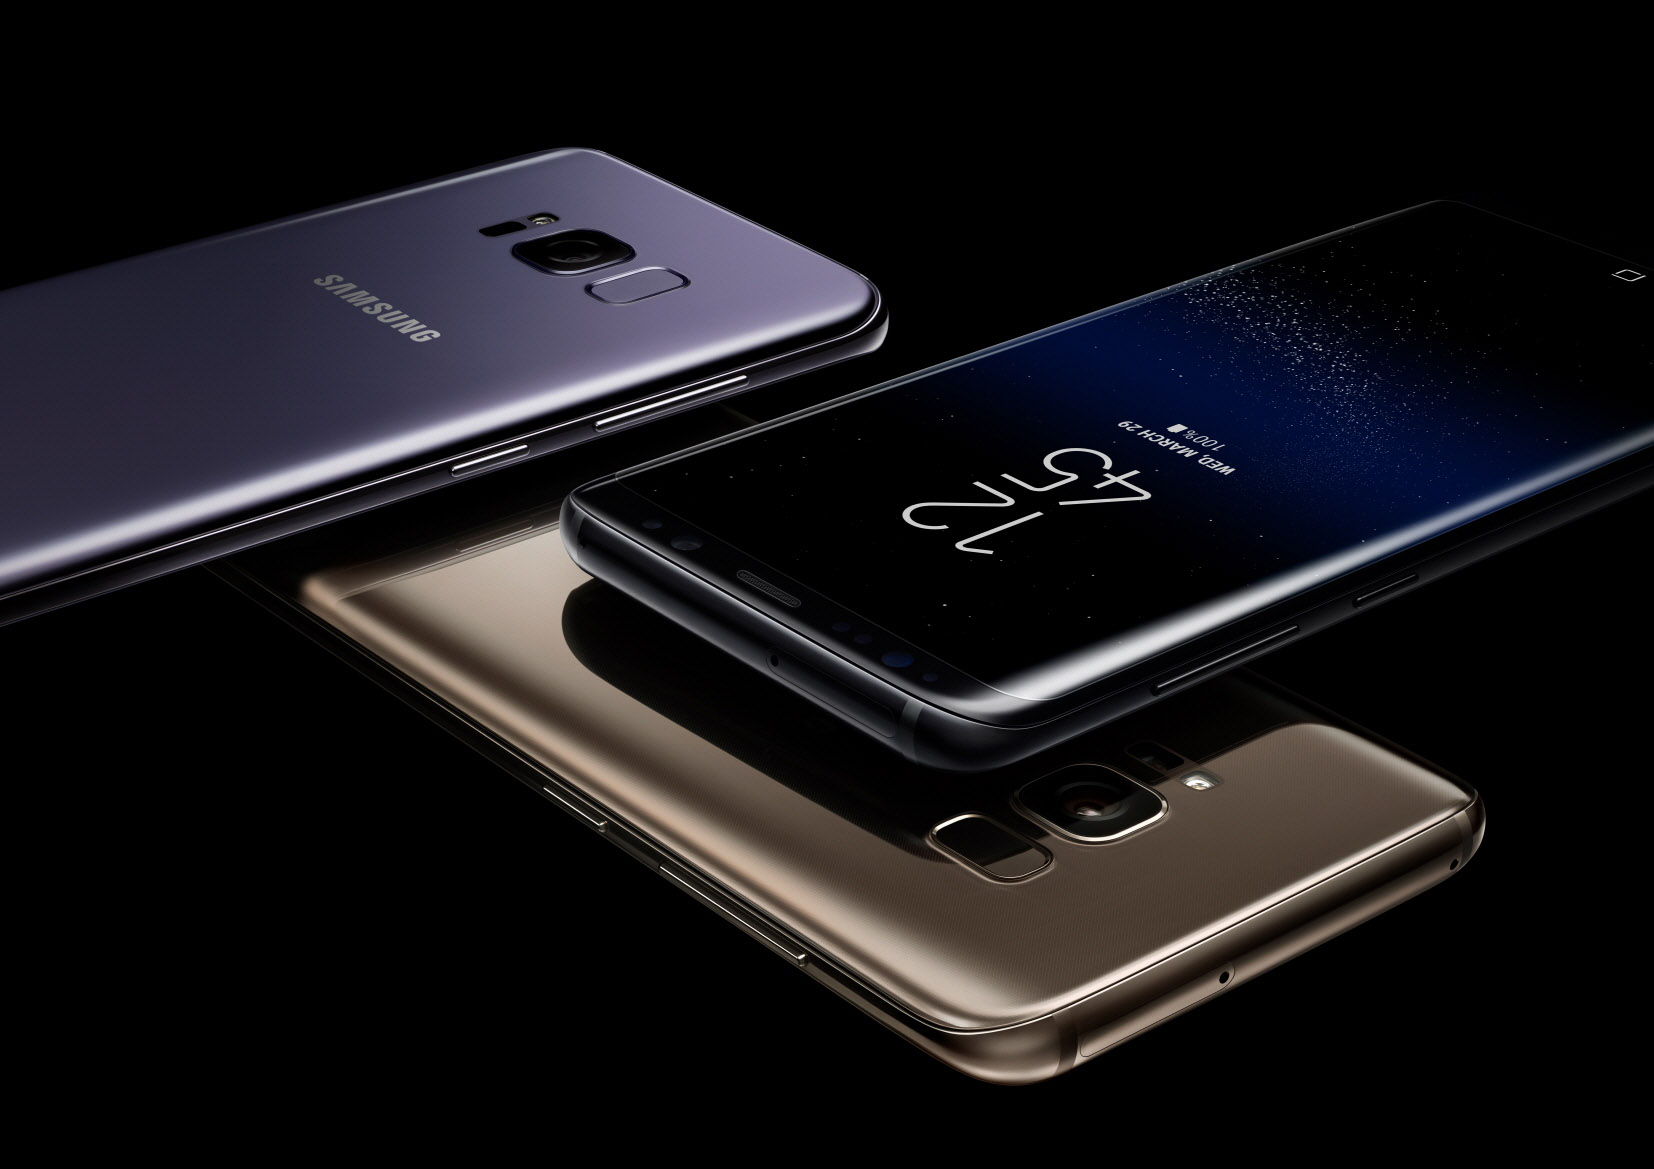 Galaxy S8 Dual SIM Factory Unlocked Variants Costs Less Than 500 Brand New Lowest Price So Far